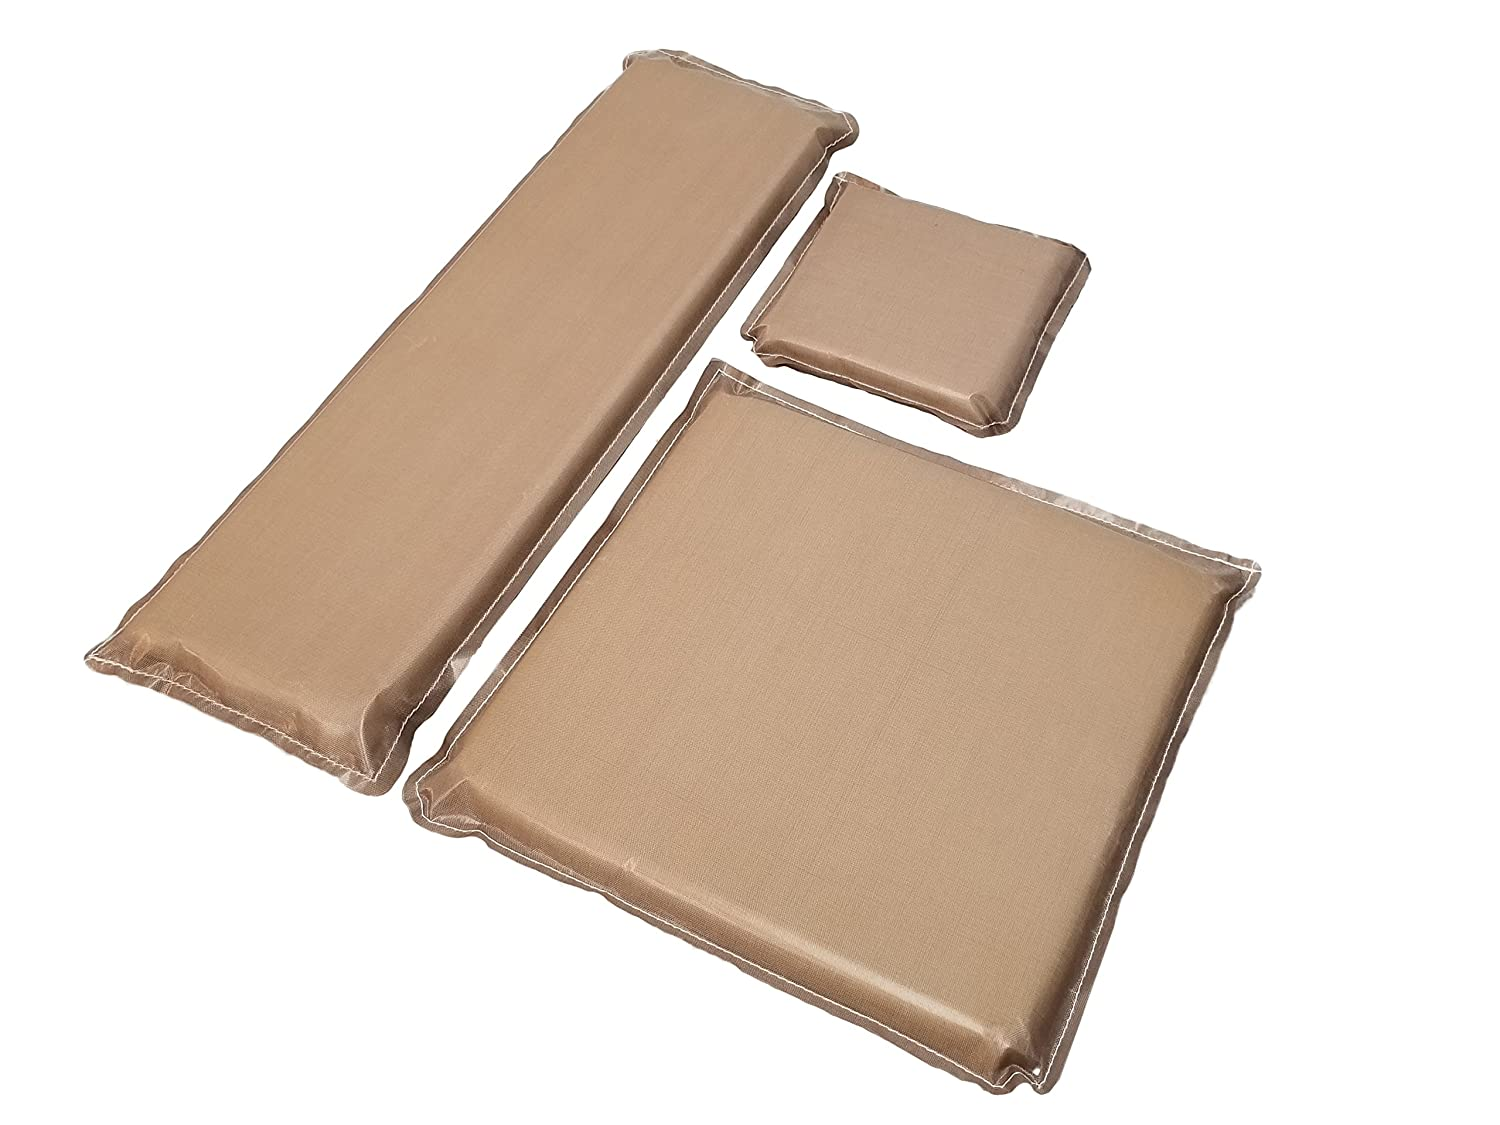 Heat Press Pillow Bundle (3 Pack) 5 x 5